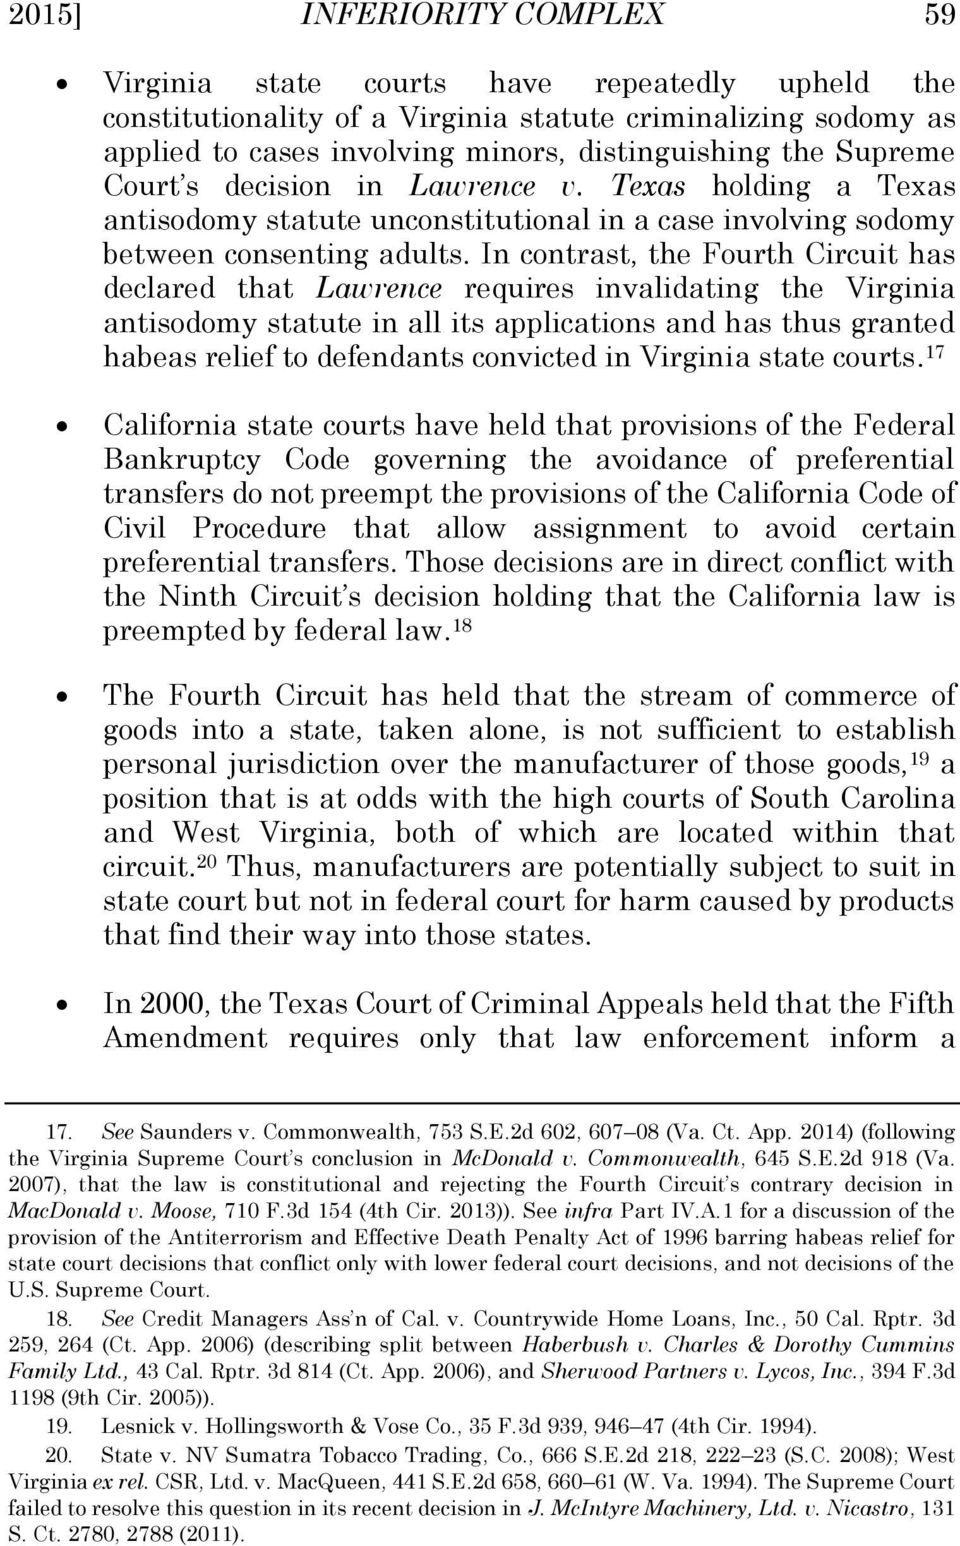 In contrast, the Fourth Circuit has declared that Lawrence requires invalidating the Virginia antisodomy statute in all its applications and has thus granted habeas relief to defendants convicted in